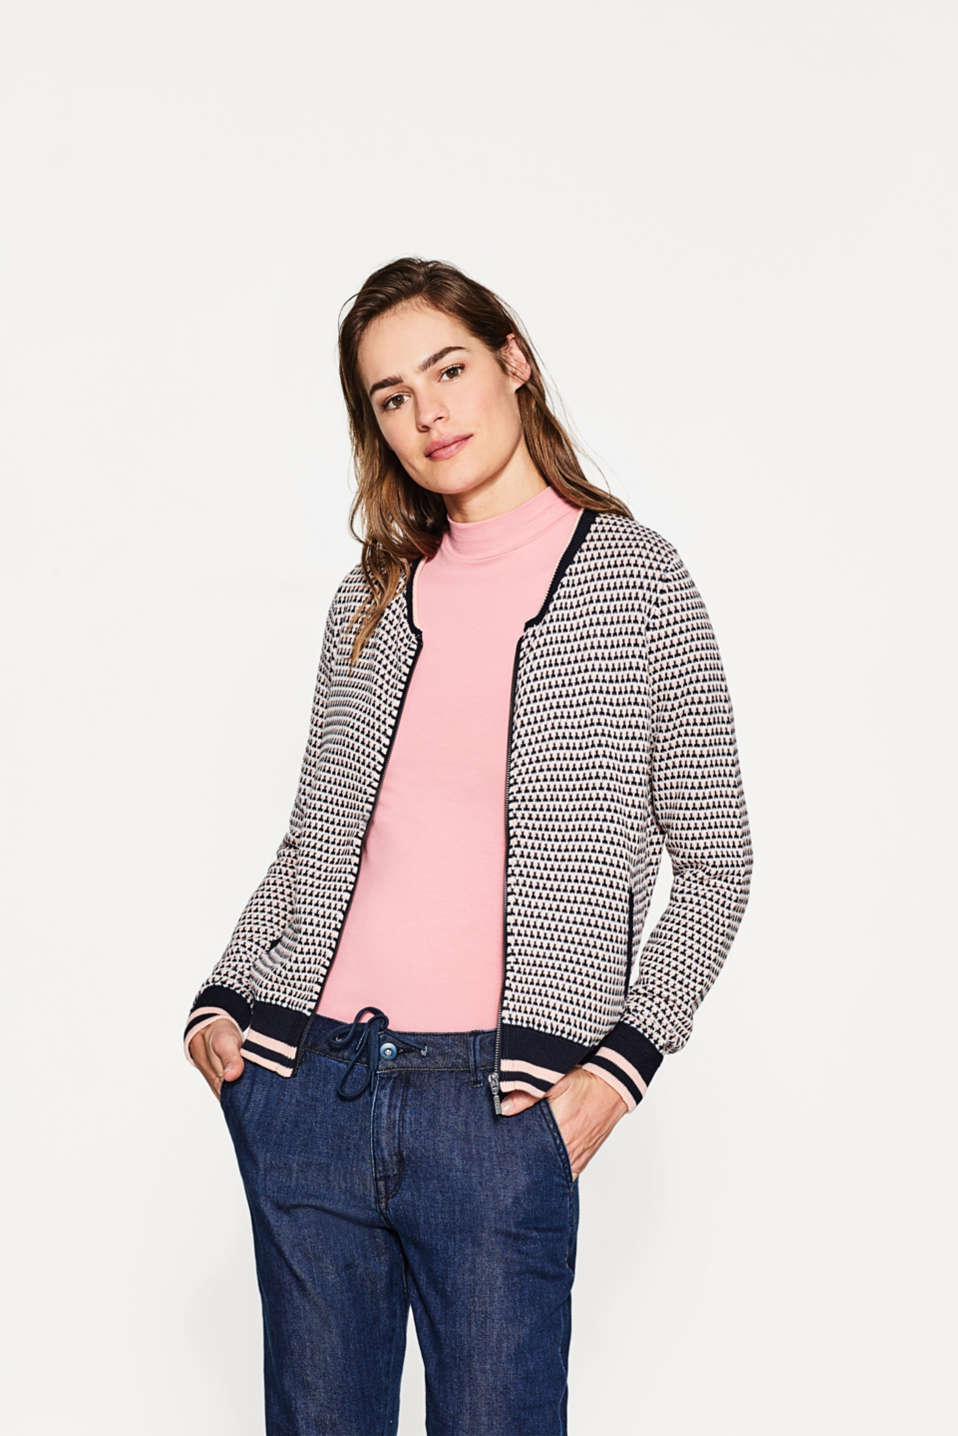 Esprit - Knit bomber jacket with a jacquard pattern